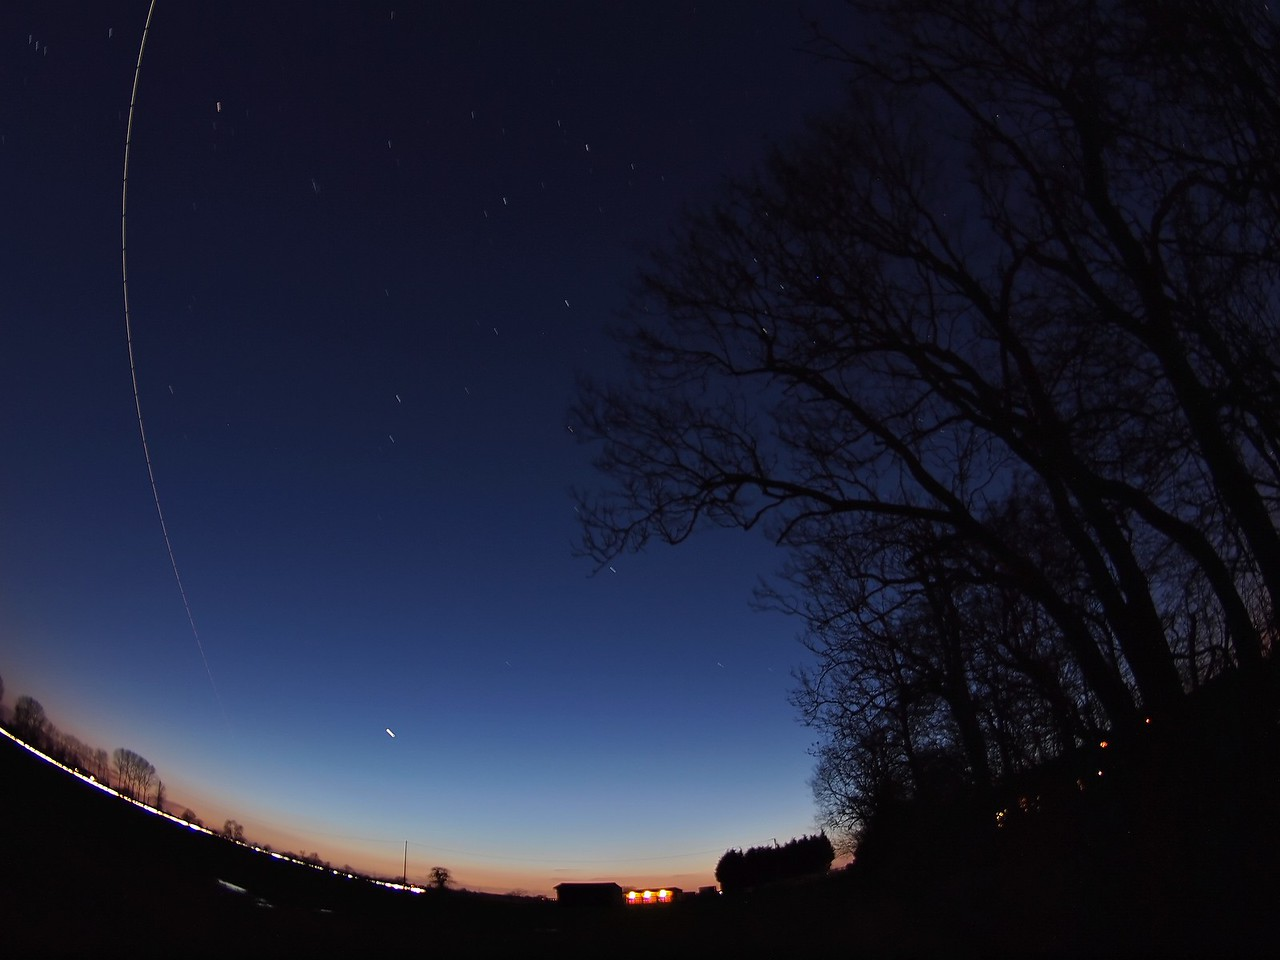 Feb 26 2011. The ISS with Space shuttle Discovery alongside fires across the UK skies.  Amazing to think Discovery has just flown over my house :-) Captured with Olympus E5 & 8mm fisheye.